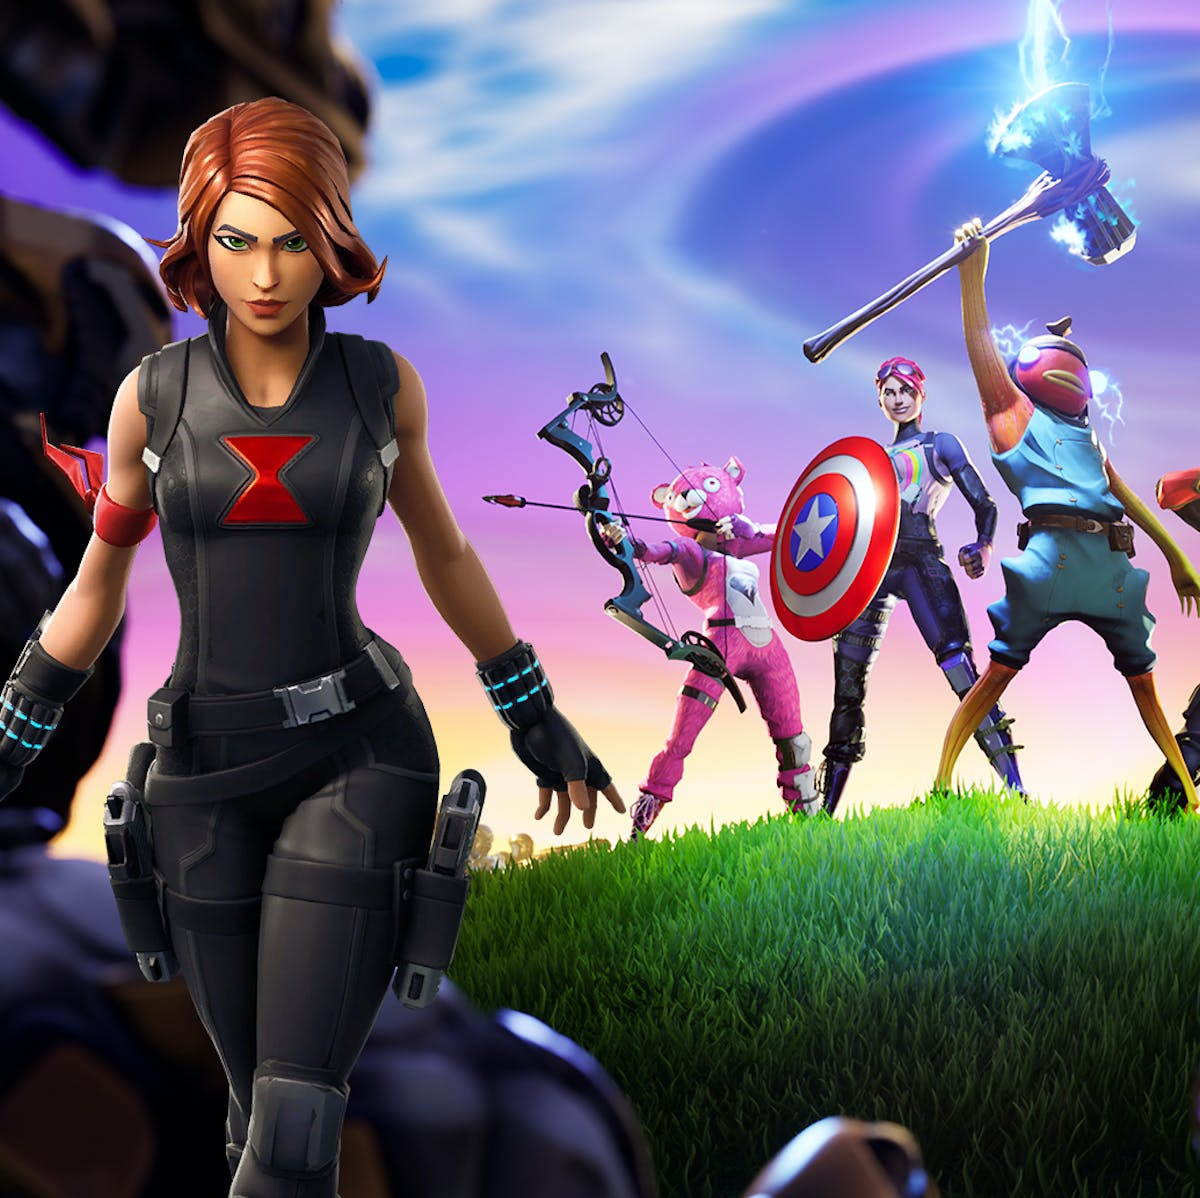 Fortnite' Black Widow Skin, Emote May Lead to Even More